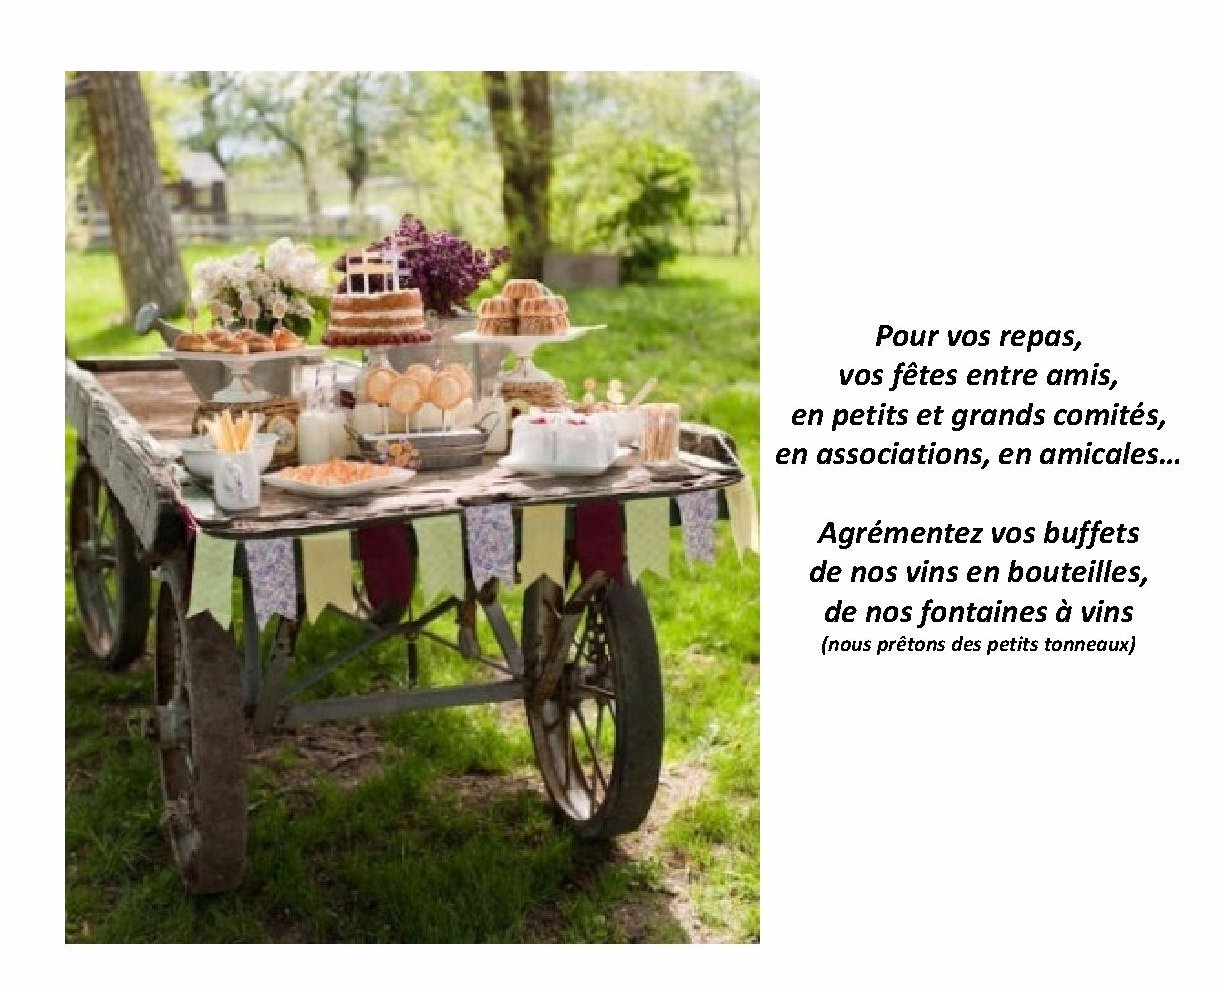 REPAS CHAMPETRES